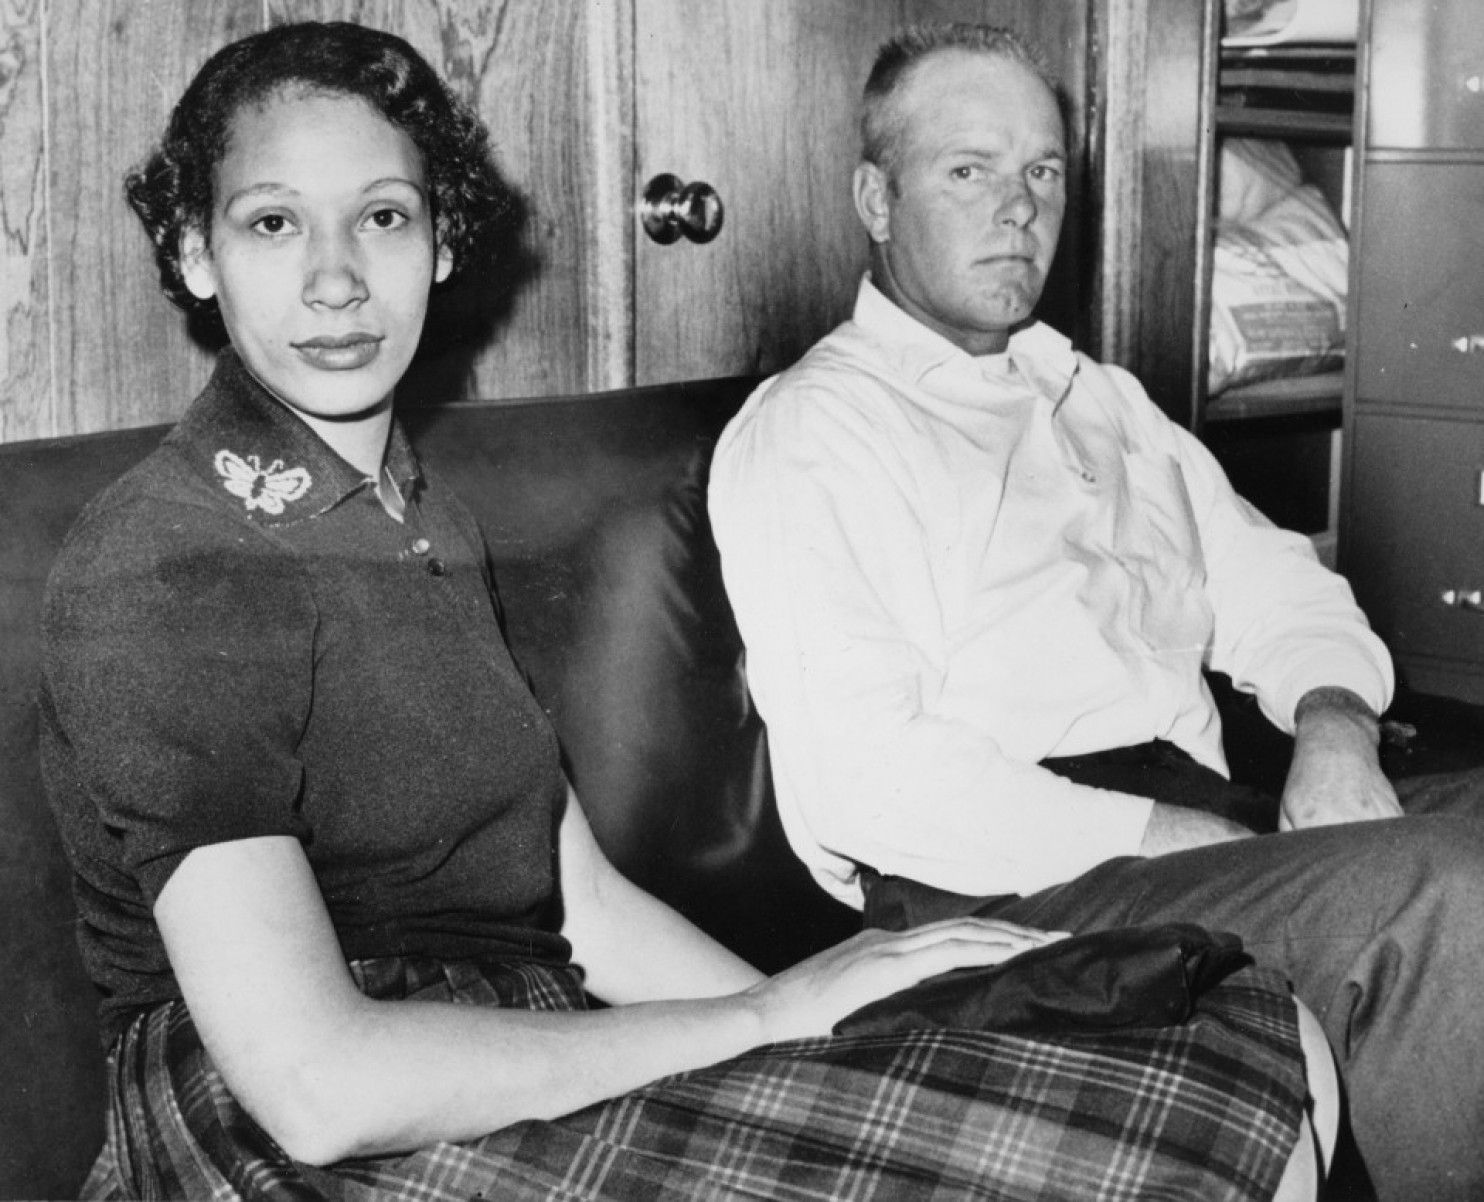 Before Loving v. Virginia, another interracial couple